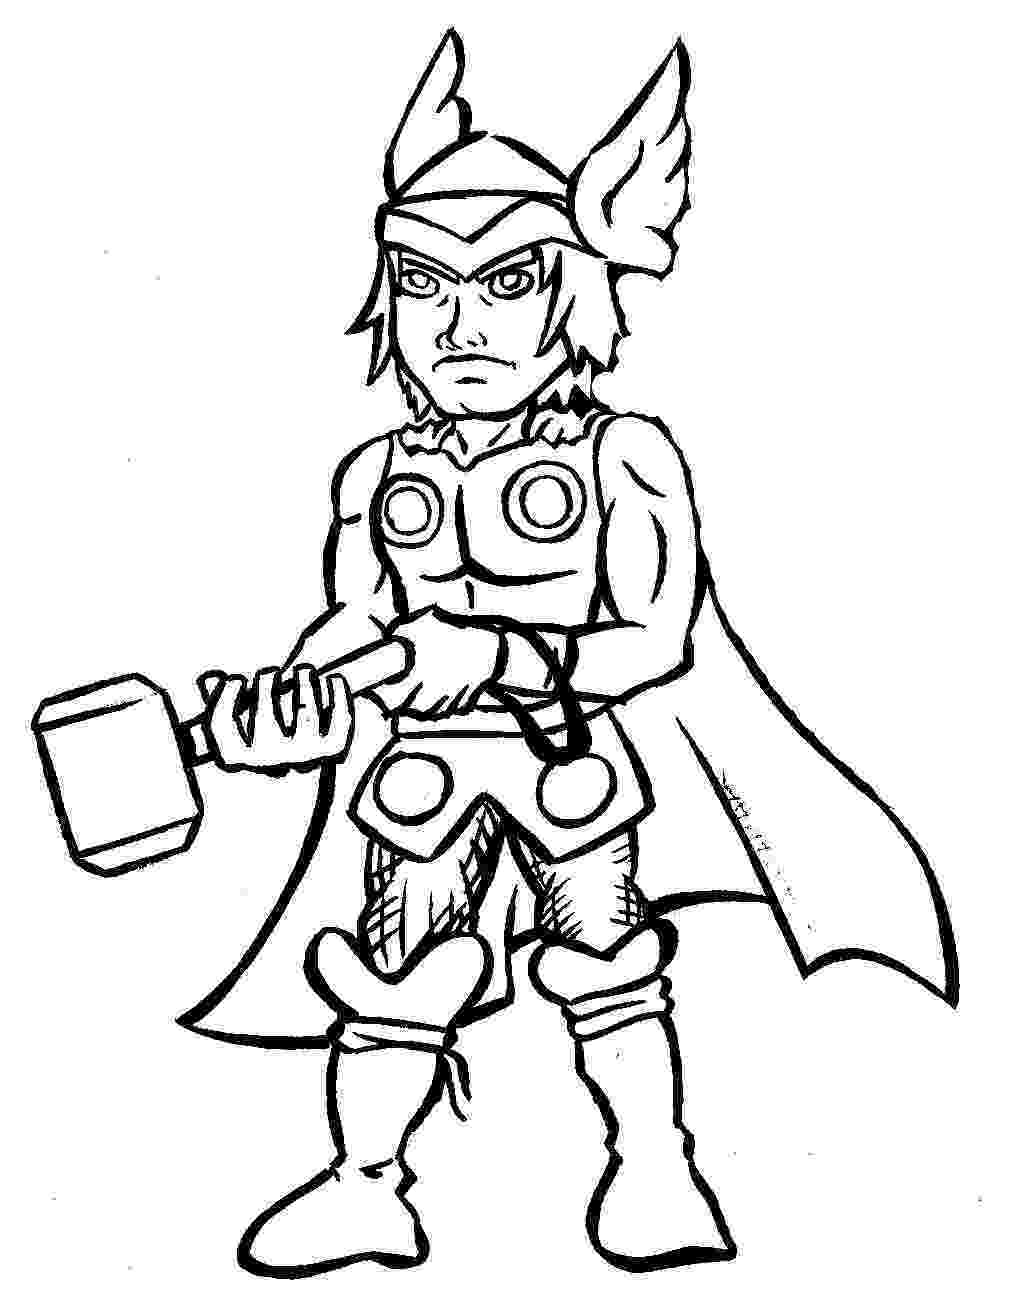 thor coloring sheet thor coloring pages coloring pages sheet coloring thor